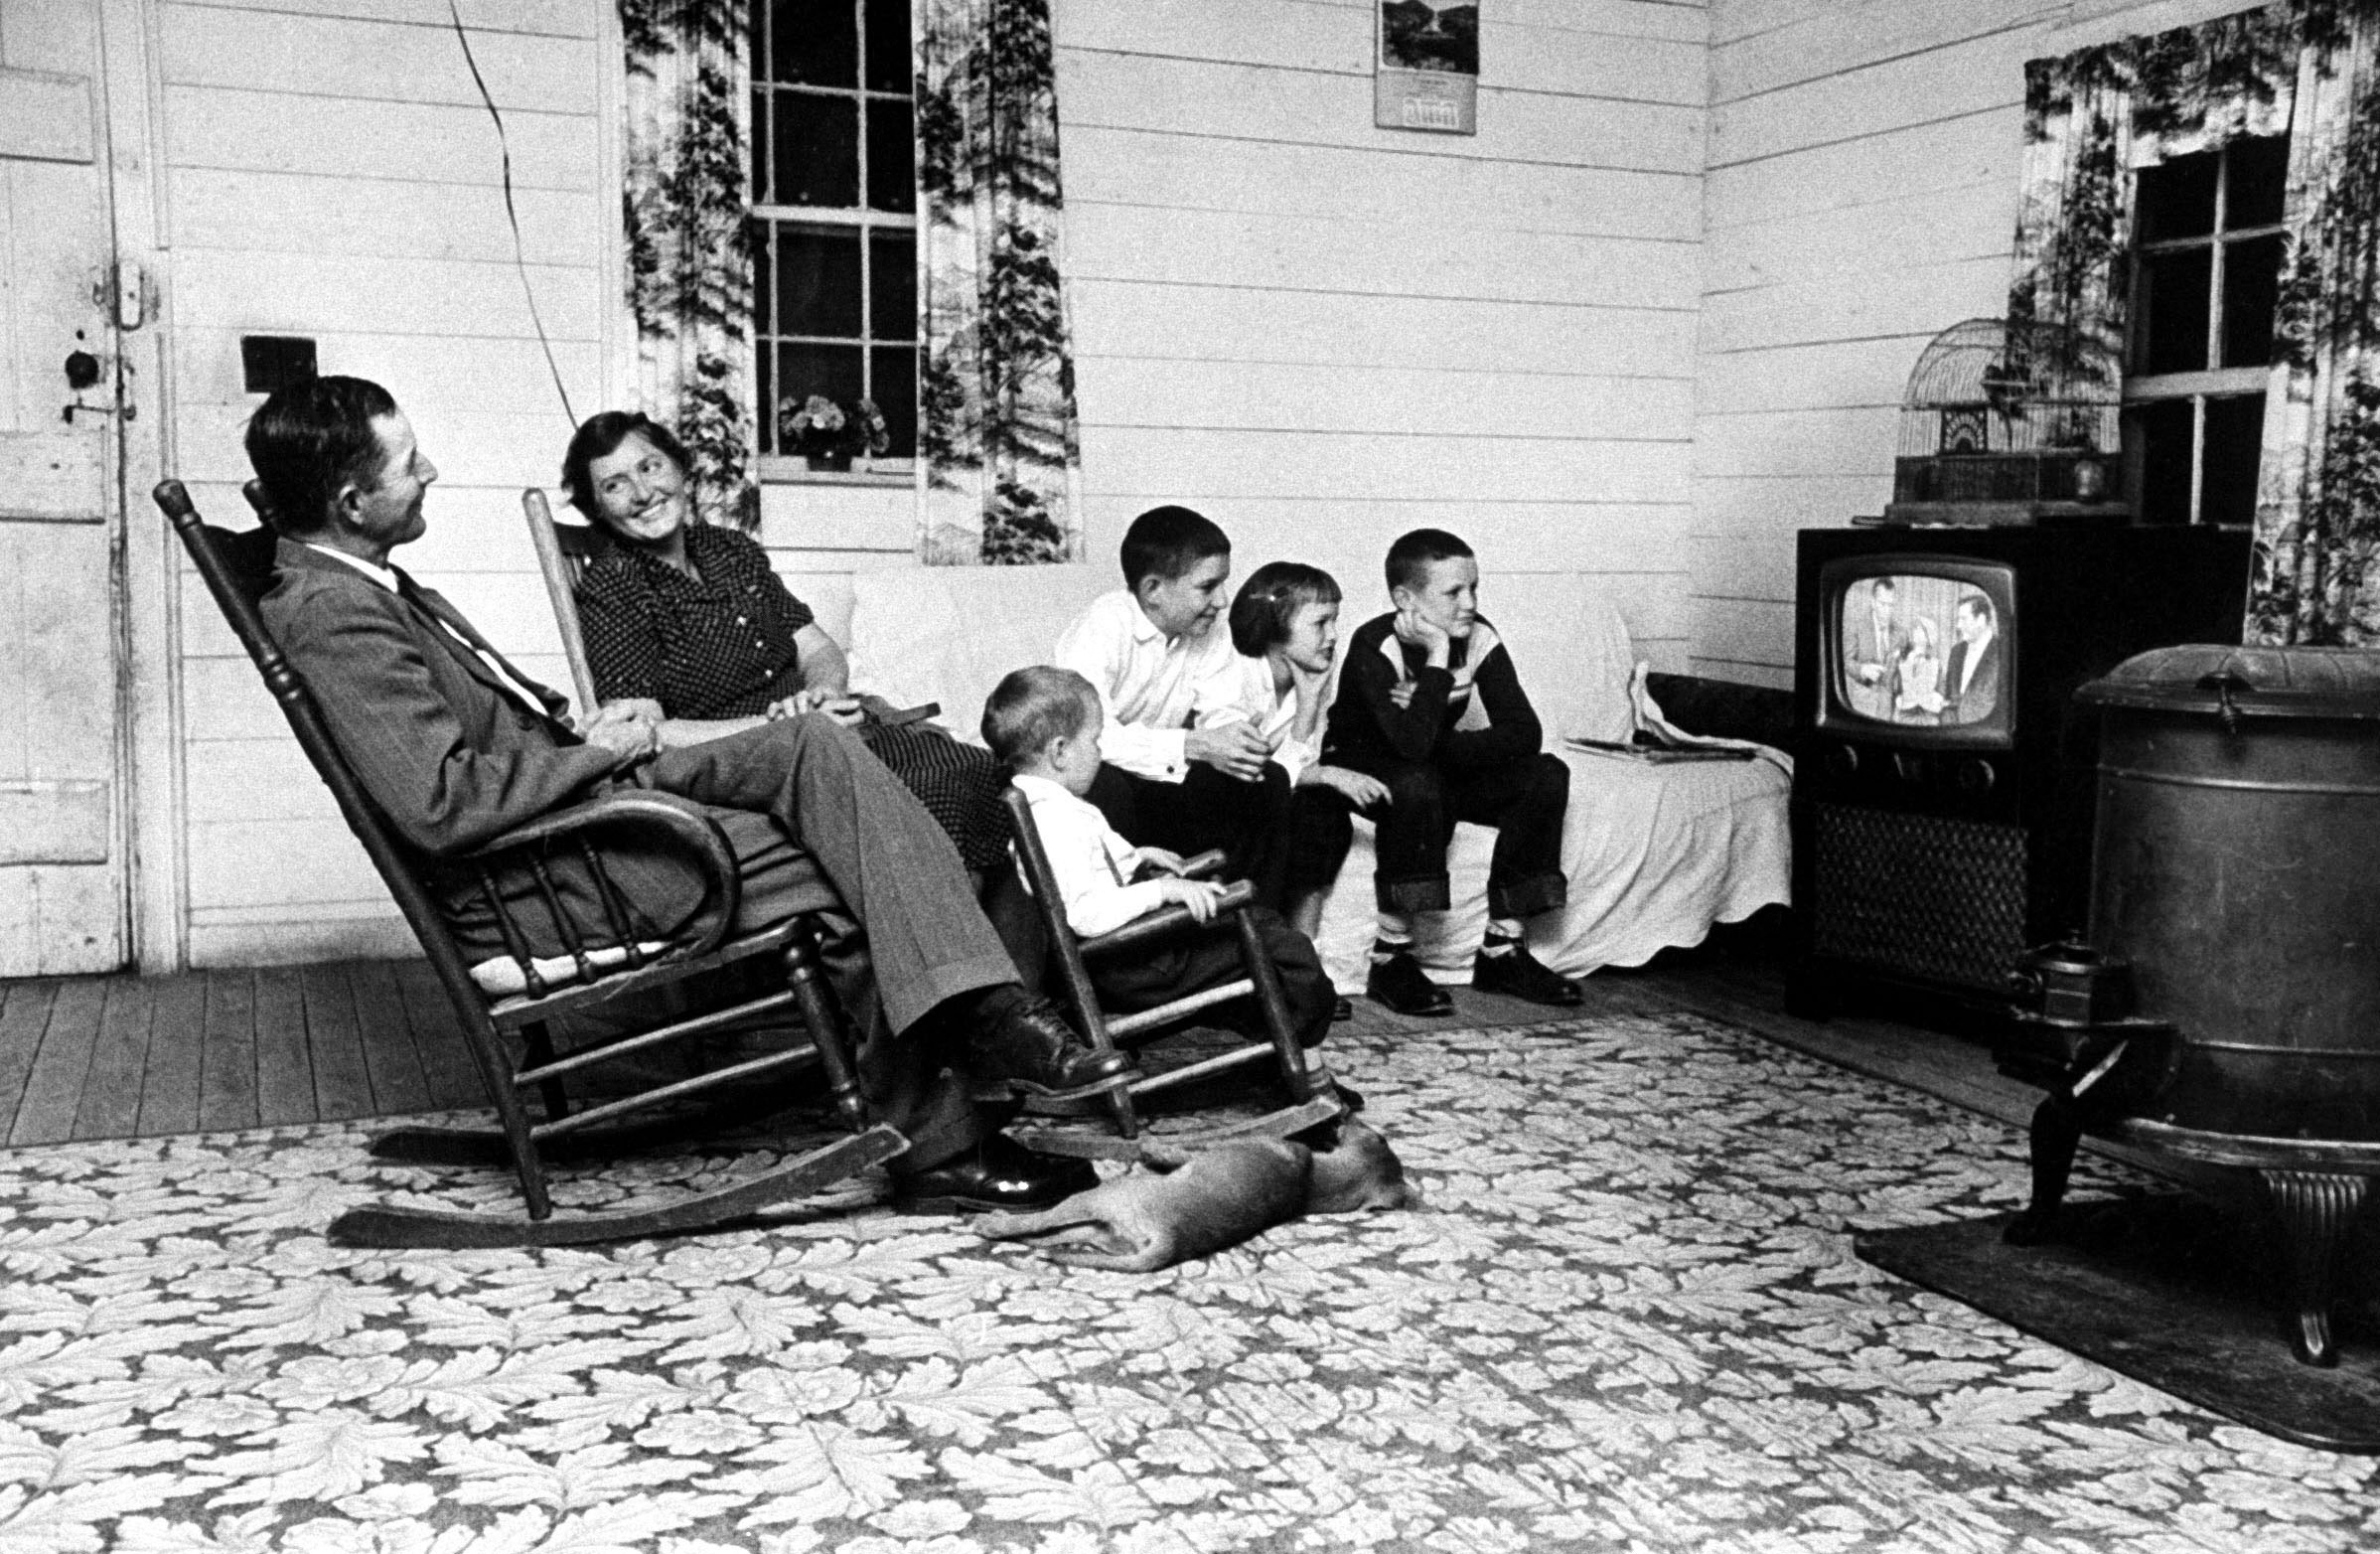 Tenant farmer Thomas B. Knox and his family watch Ed Sullivan and ventriloquist Rickie Layne on <i>The Ed Sullivan Show</i> in 1958.